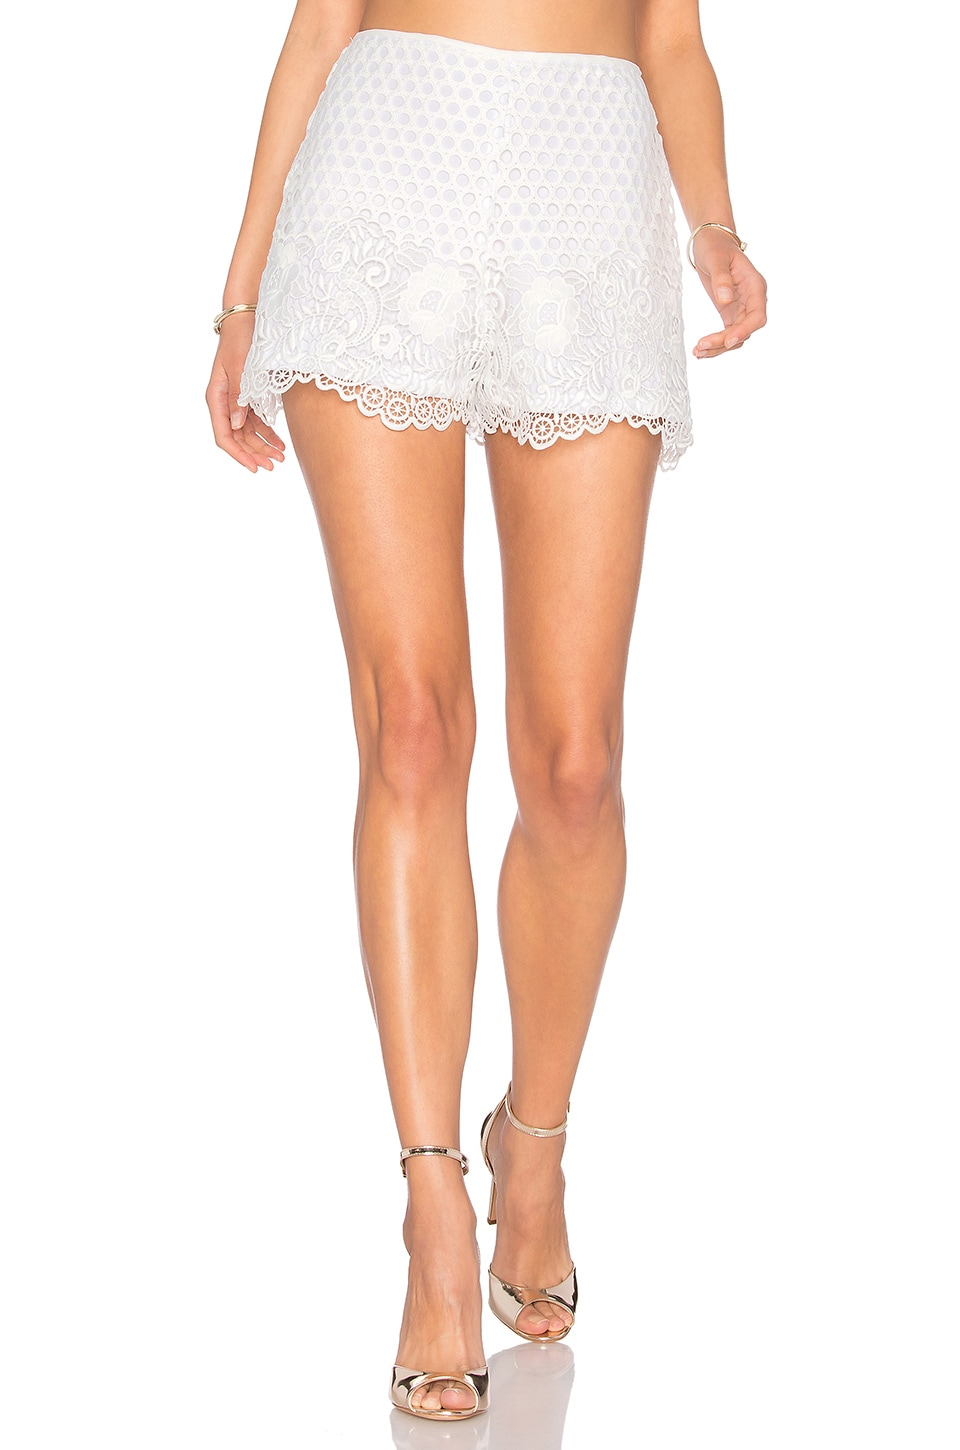 Saint Lace Short by Karina Grimaldi